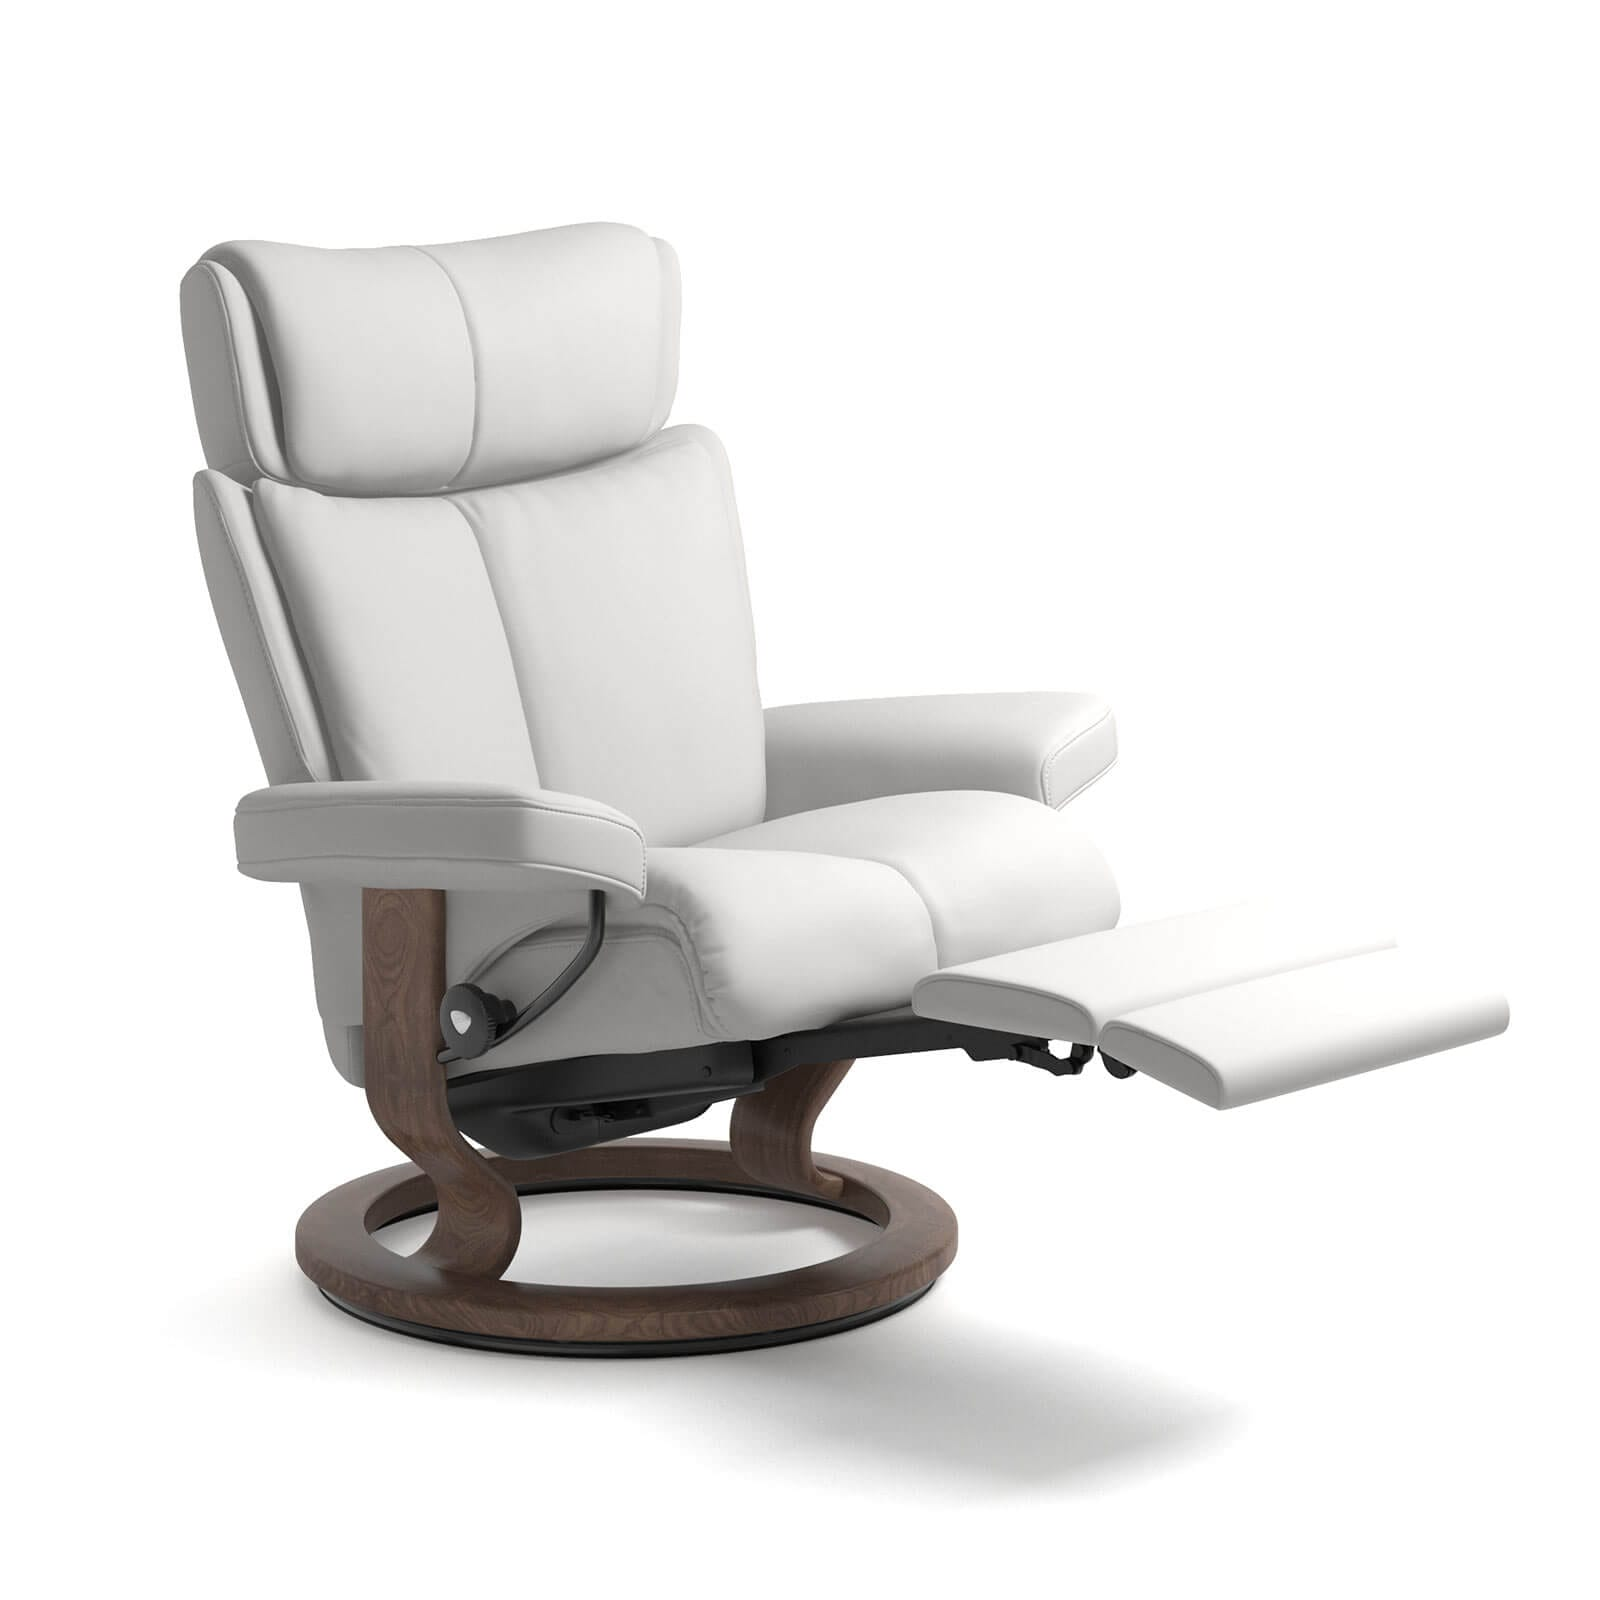 Stressless Sessel Preis Preis Stressless Sessel Magic